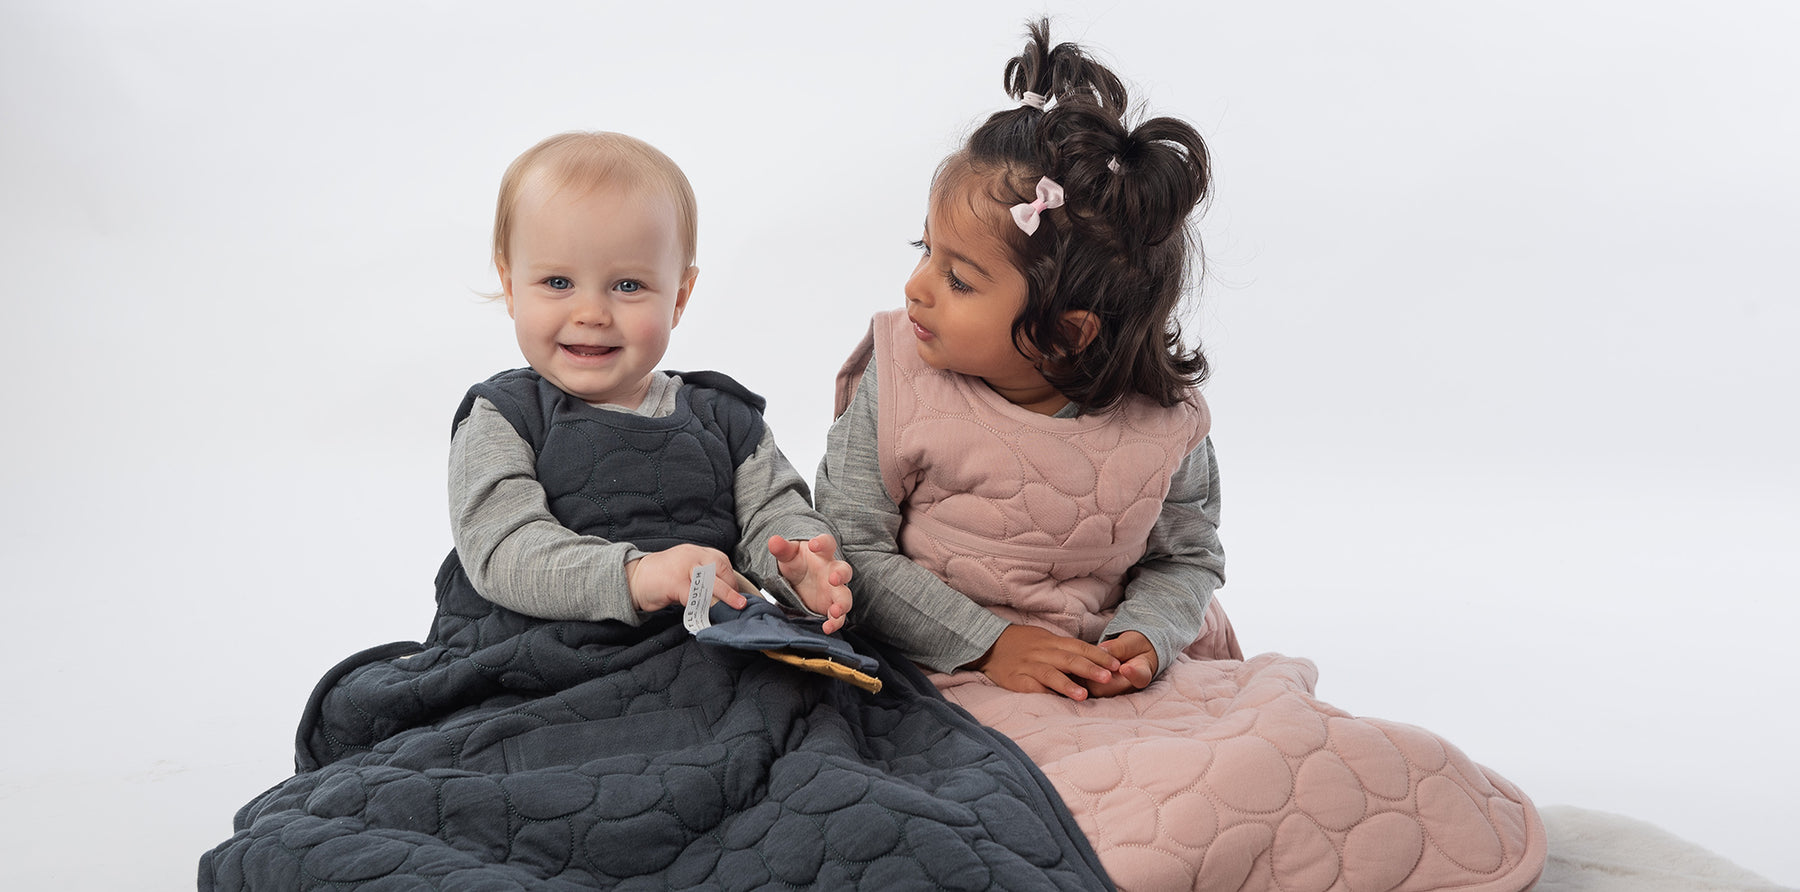 Check our handy temperature guide and find the best weight Go Go Bag and sleepwear layers to dress your baby in this winter. It will give you peace of mind that your baby is at a safe temperature throughout their sleep.